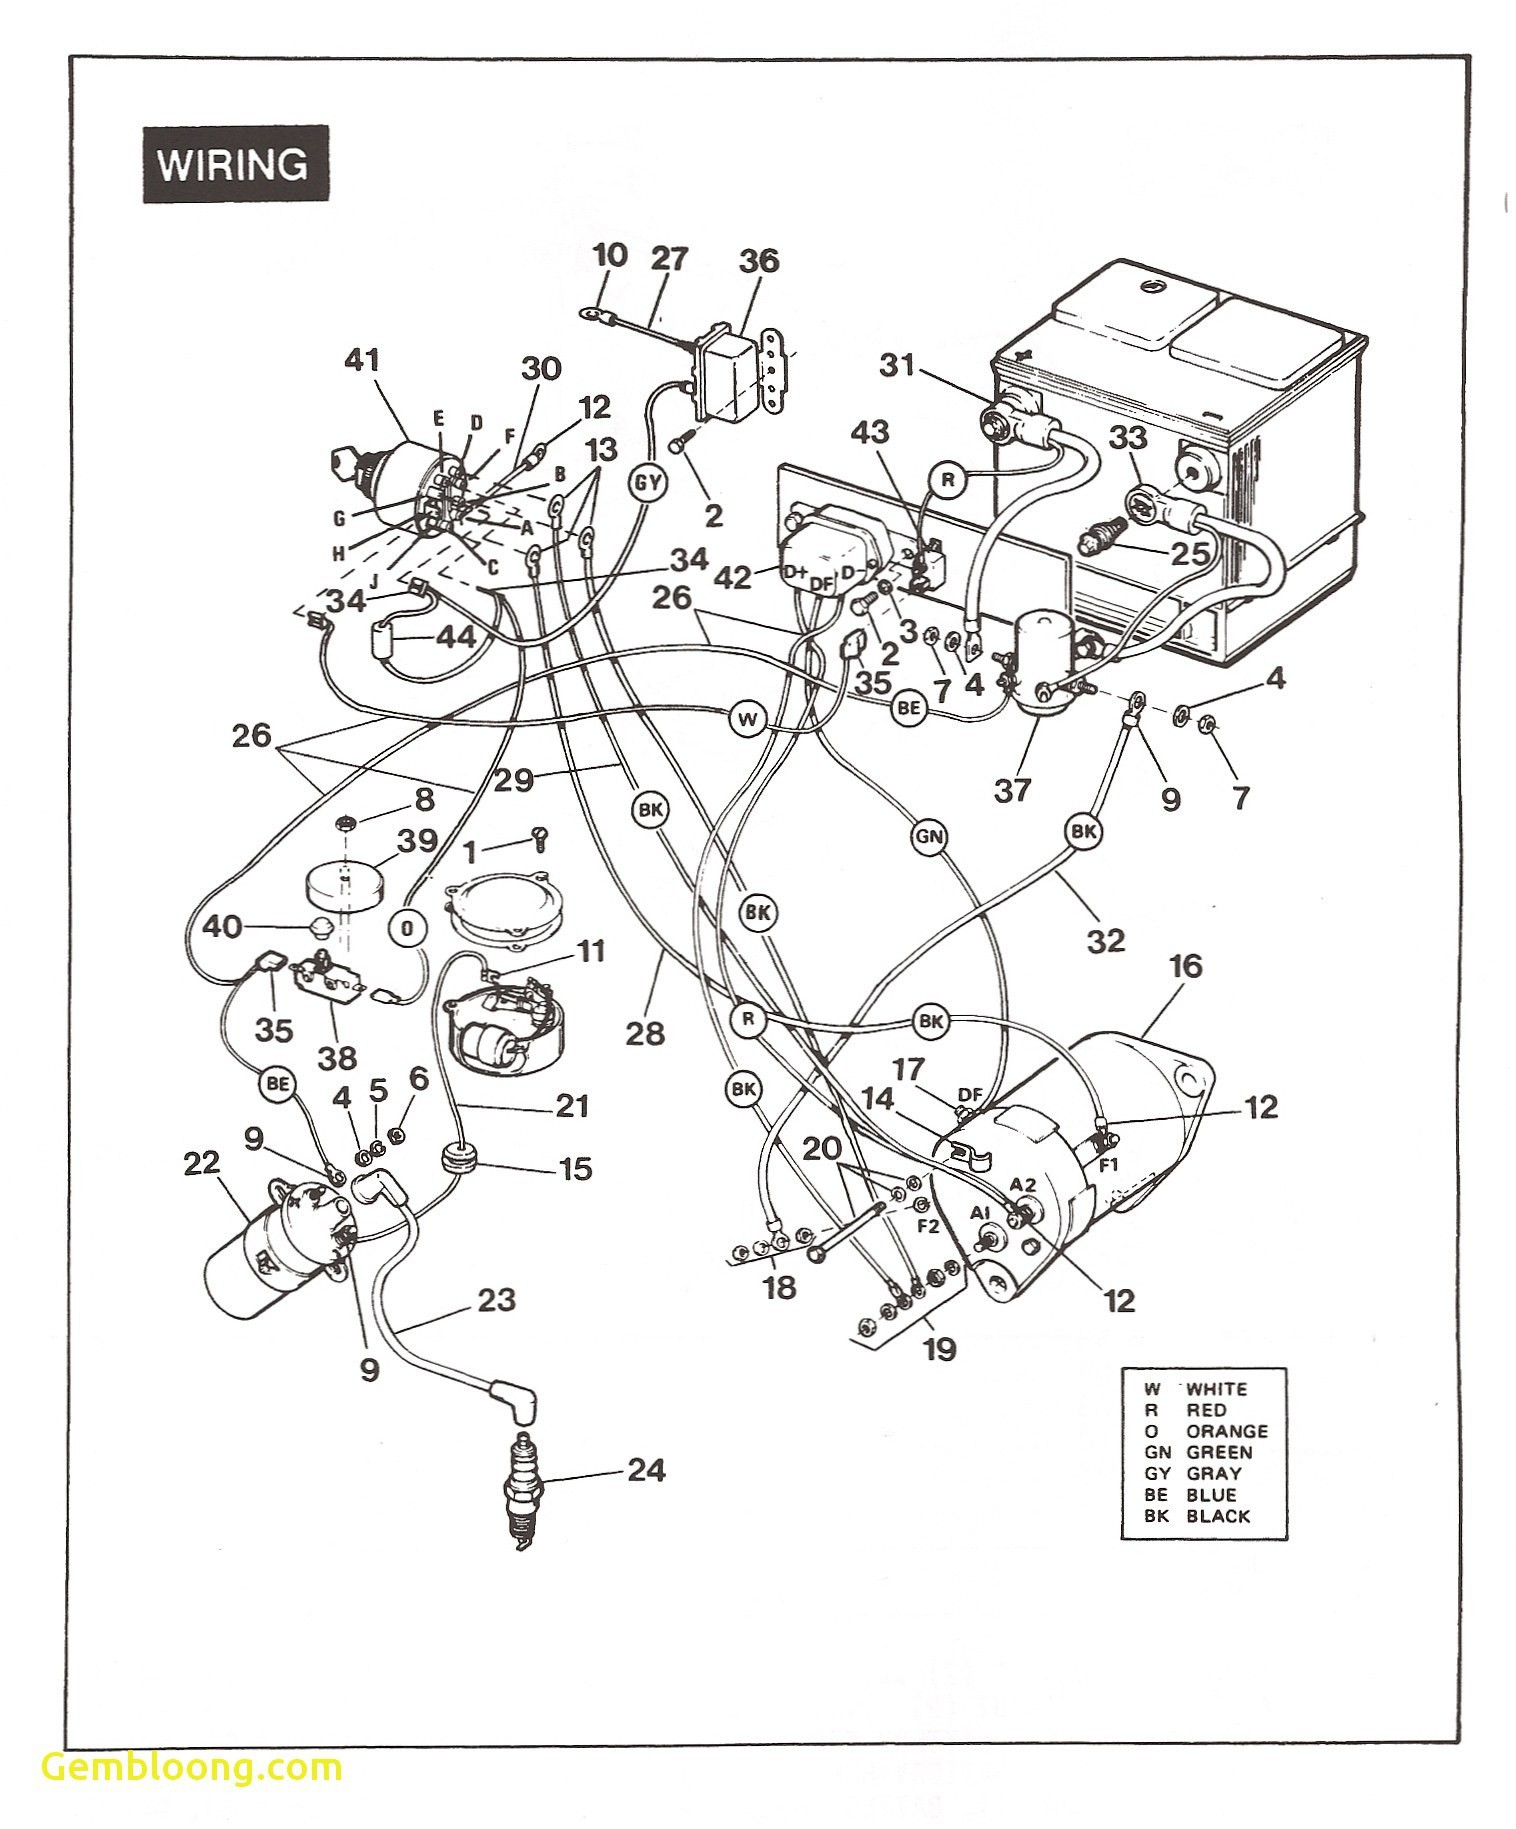 hight resolution of columbia par car 48v wiring diagram